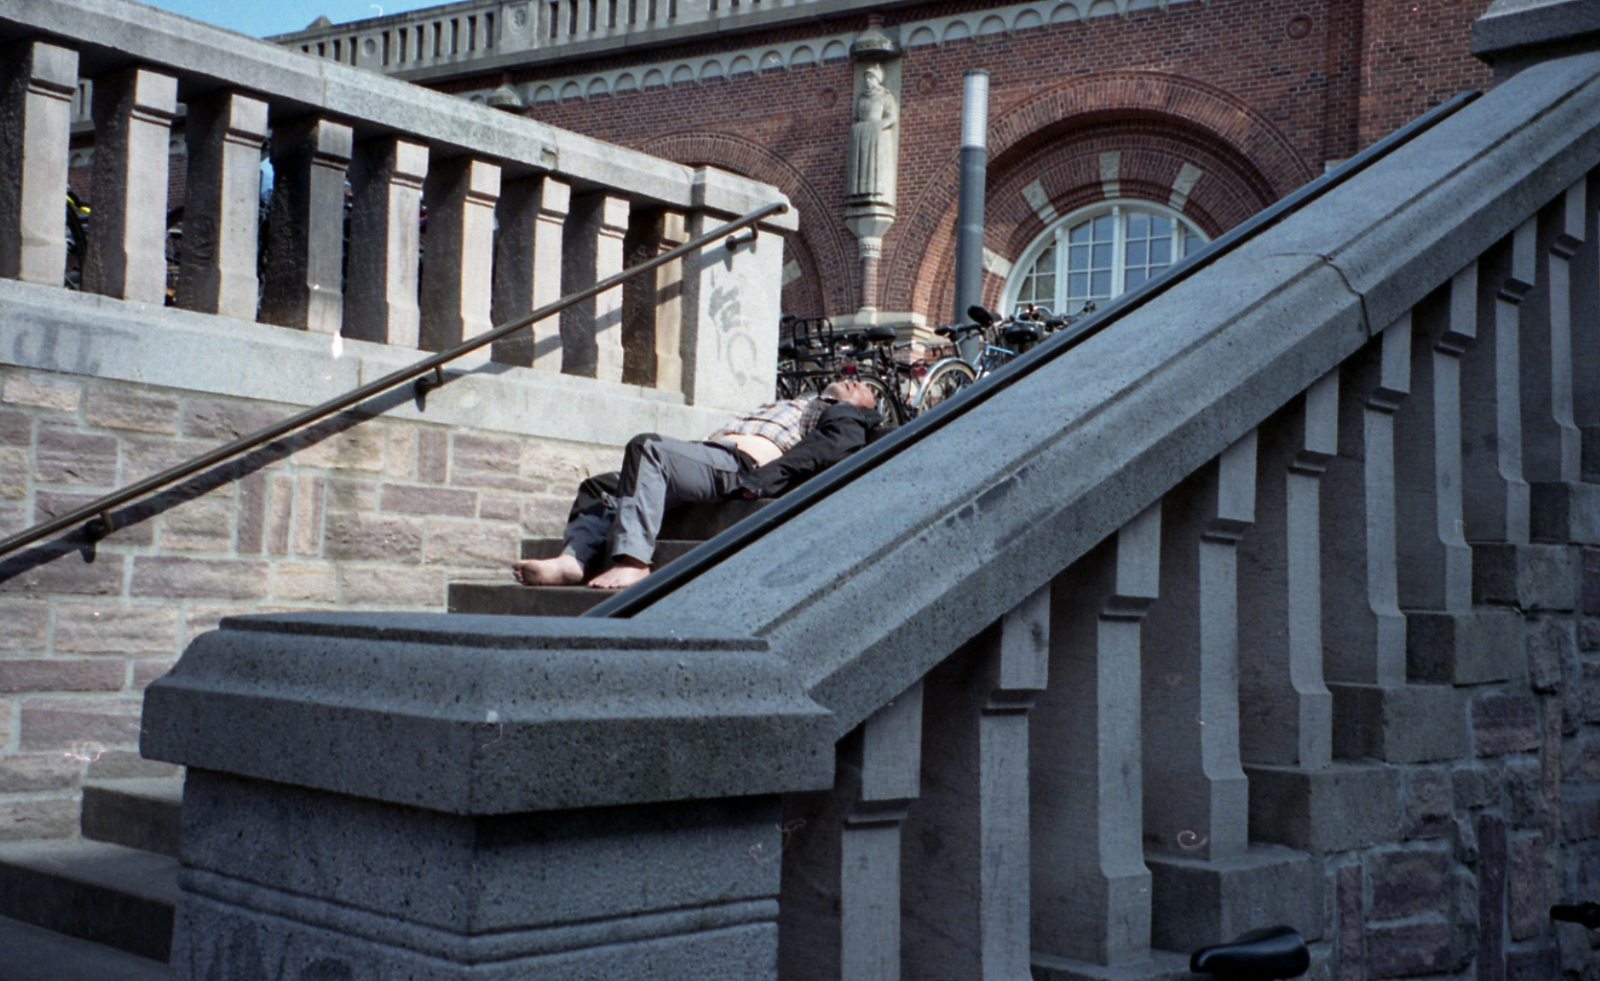 Man on steps, Copenhagen 2013.